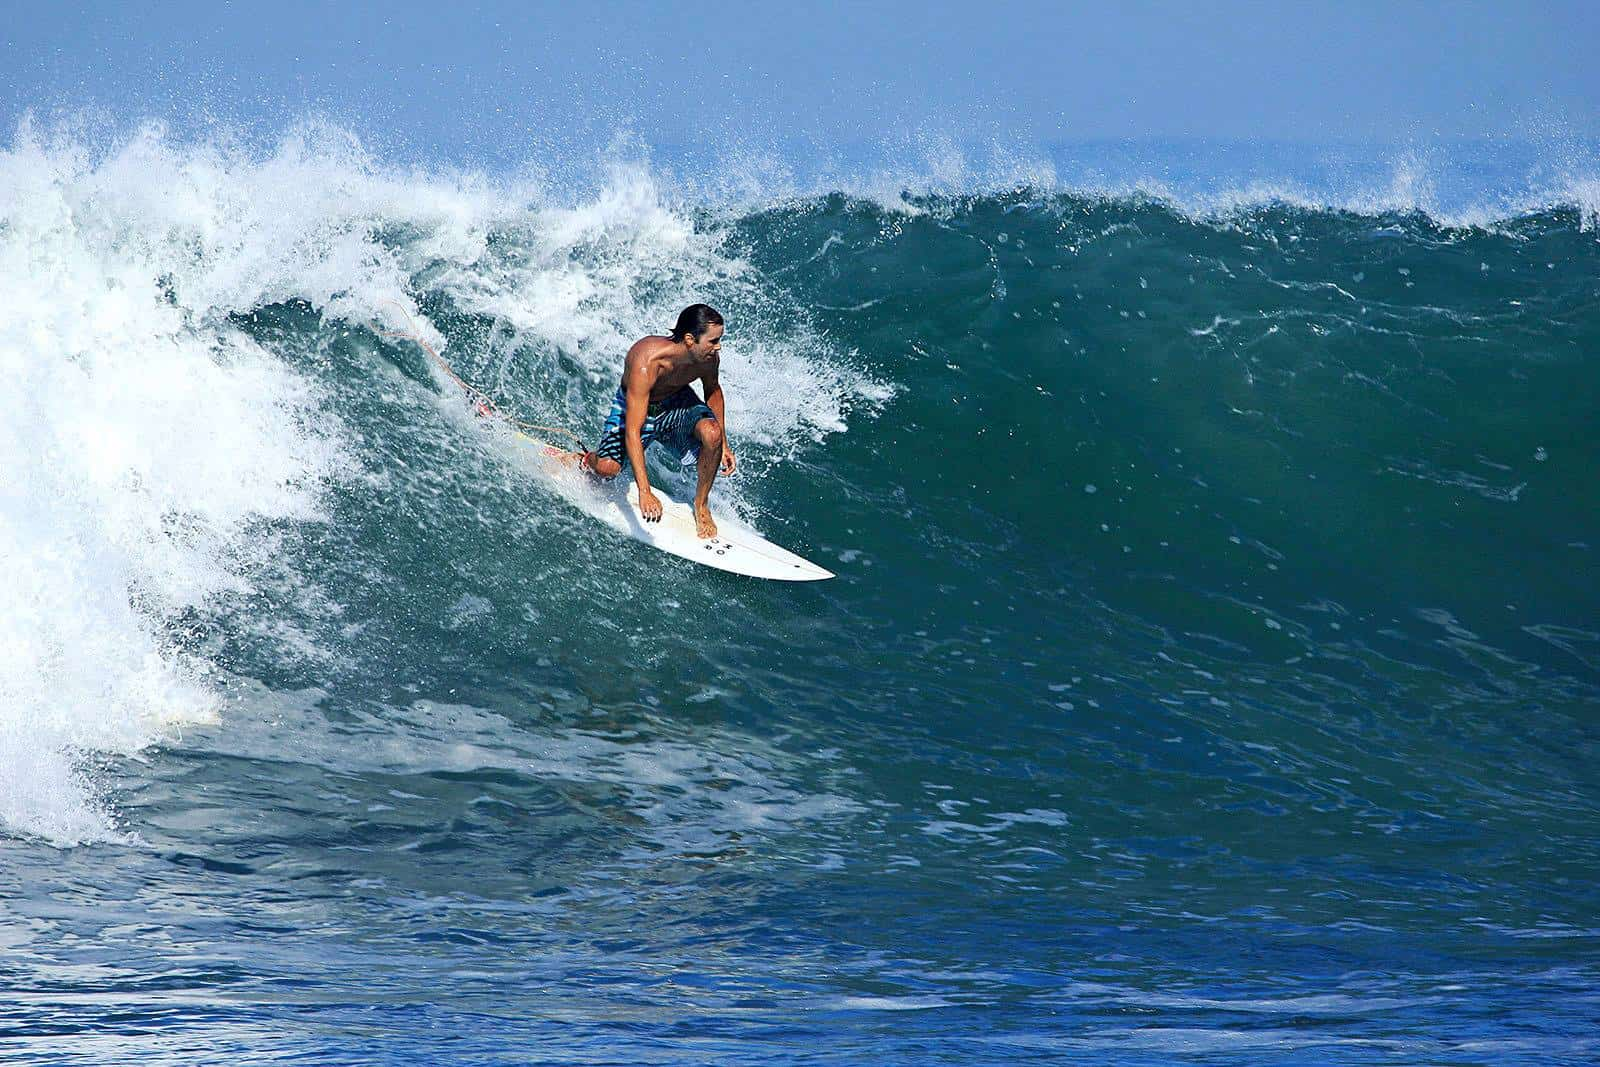 Surfer Girl Bali Wallpaper Bali Guide What You Need To Know About Surfing And